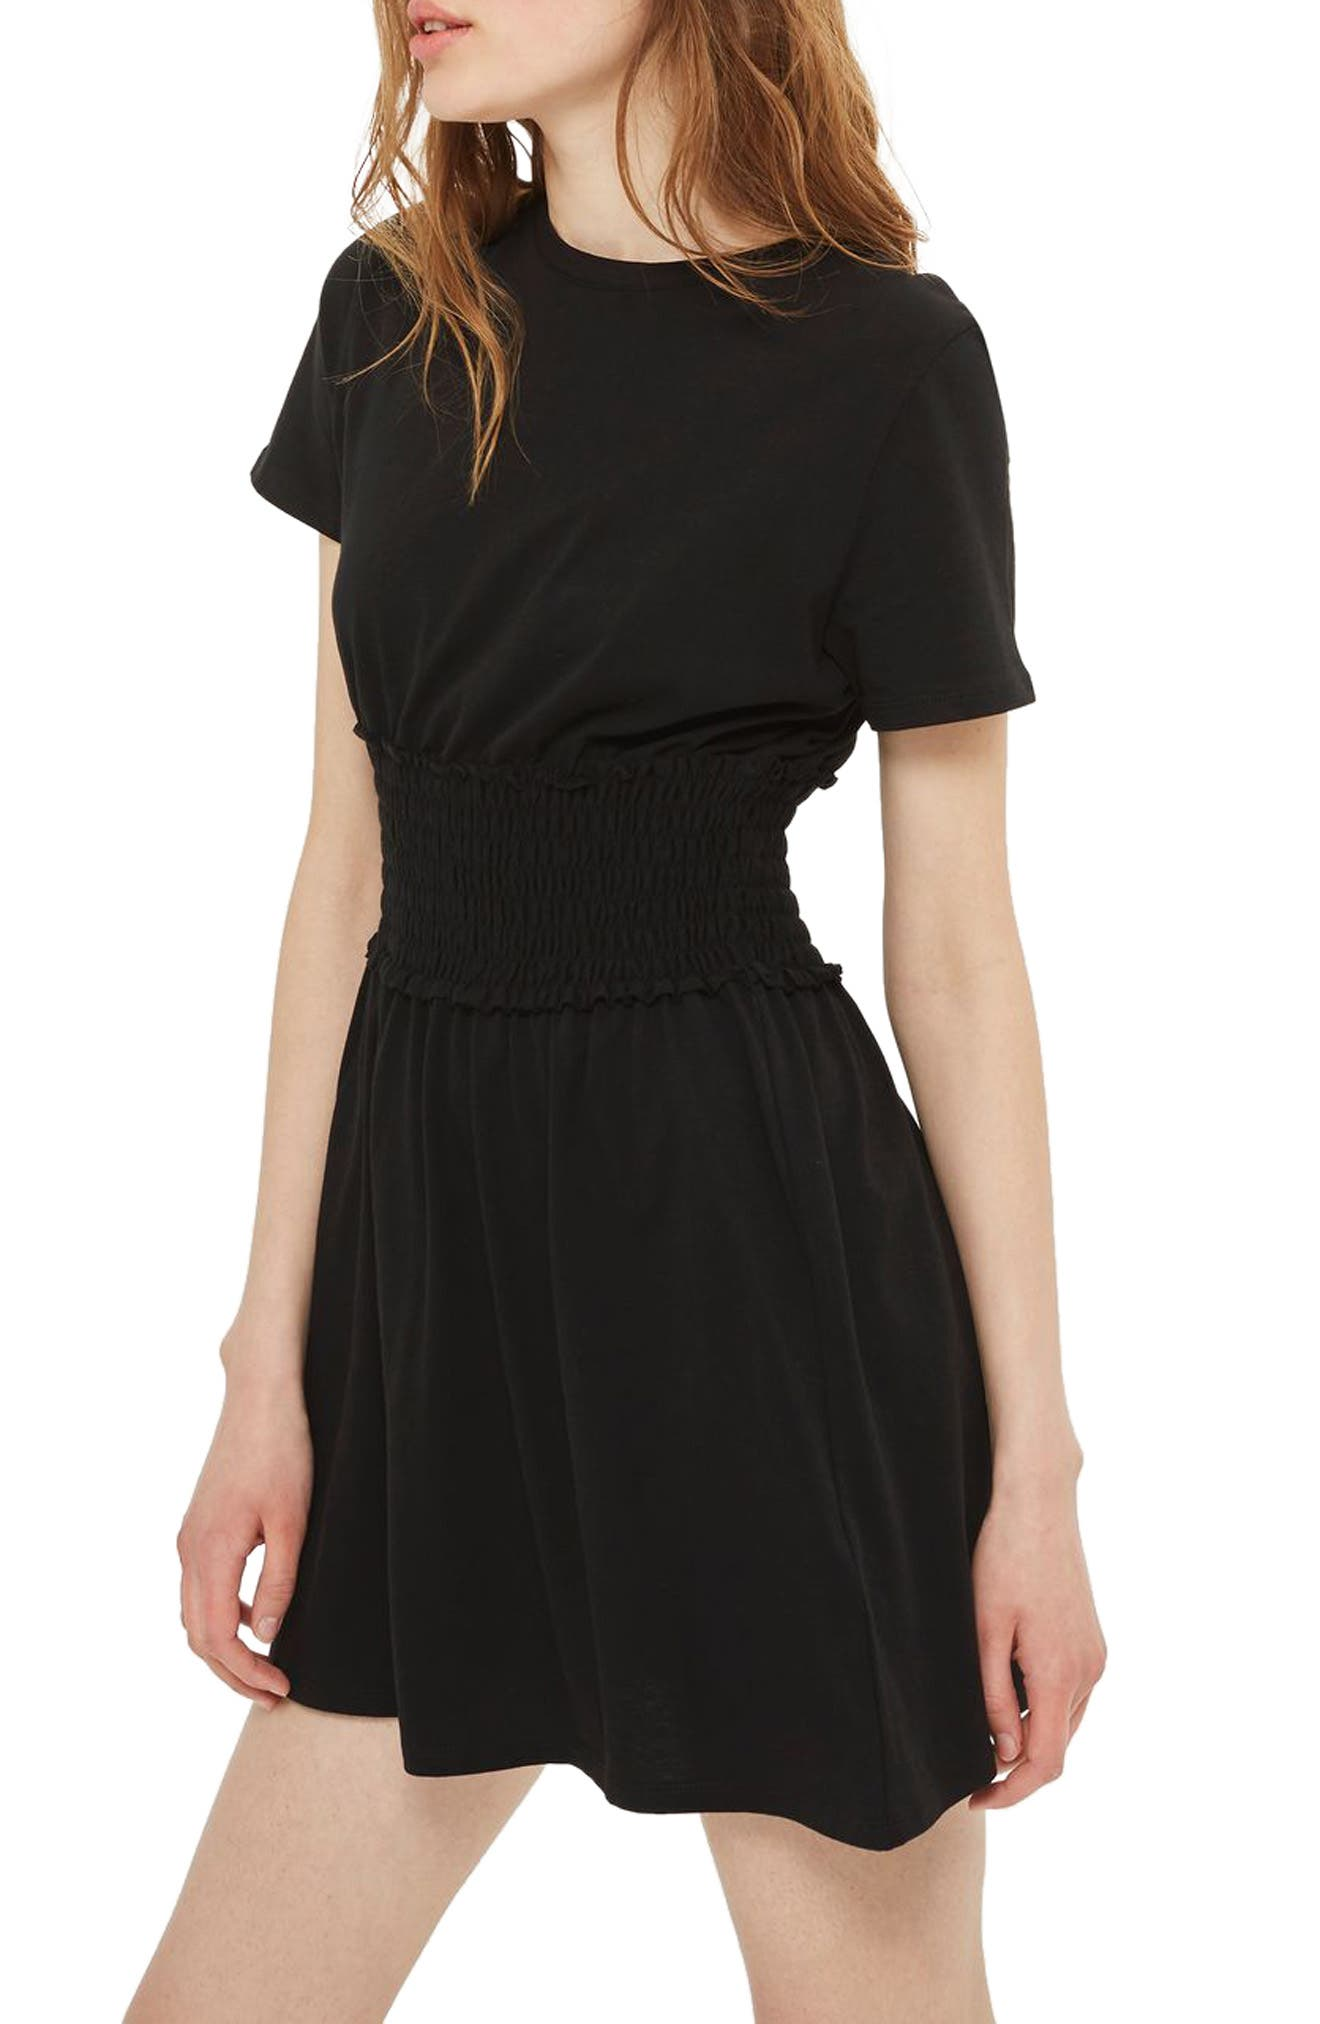 Topshop Smocked Corset T-Shirt Dress